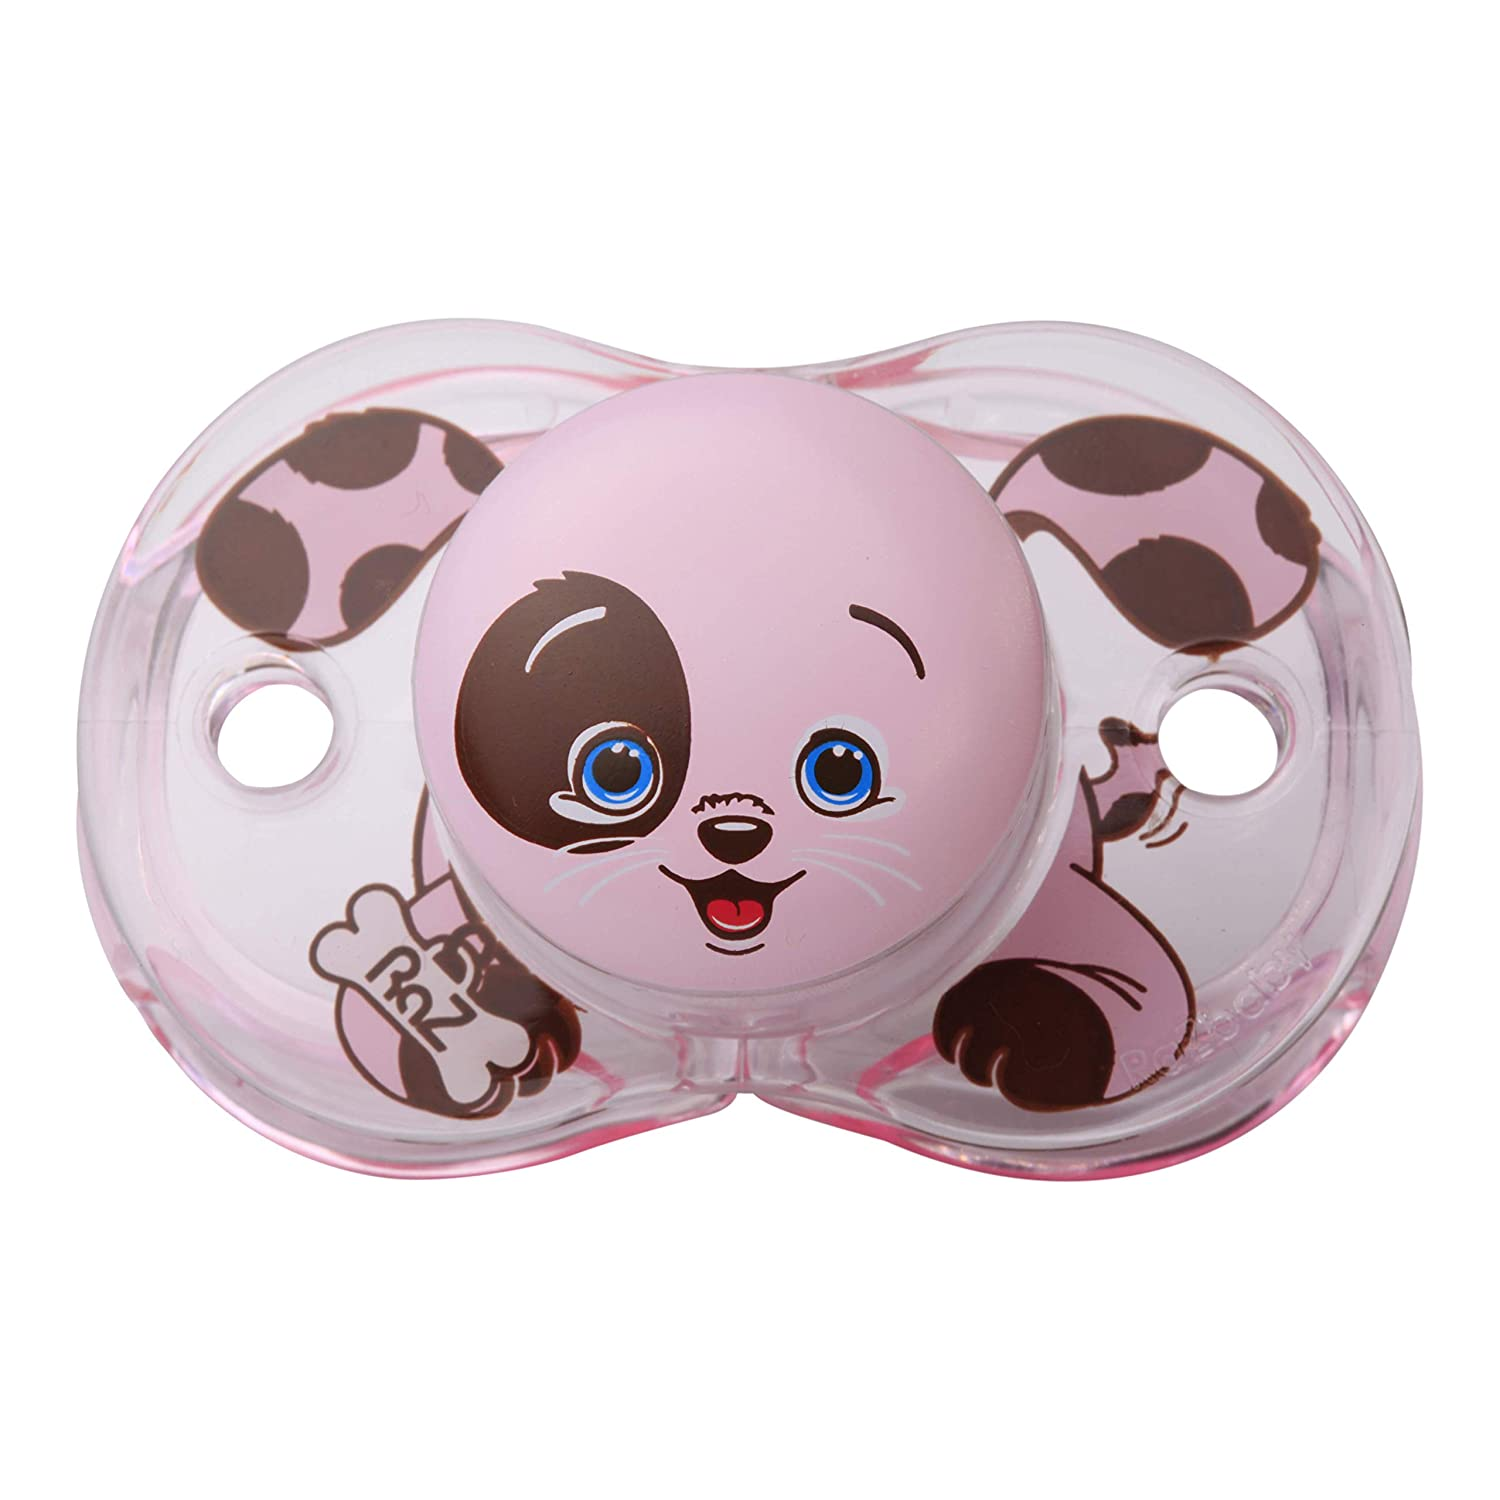 RaZbaby Keep-It-Kleen Pacifier, Pink Percy Puppy